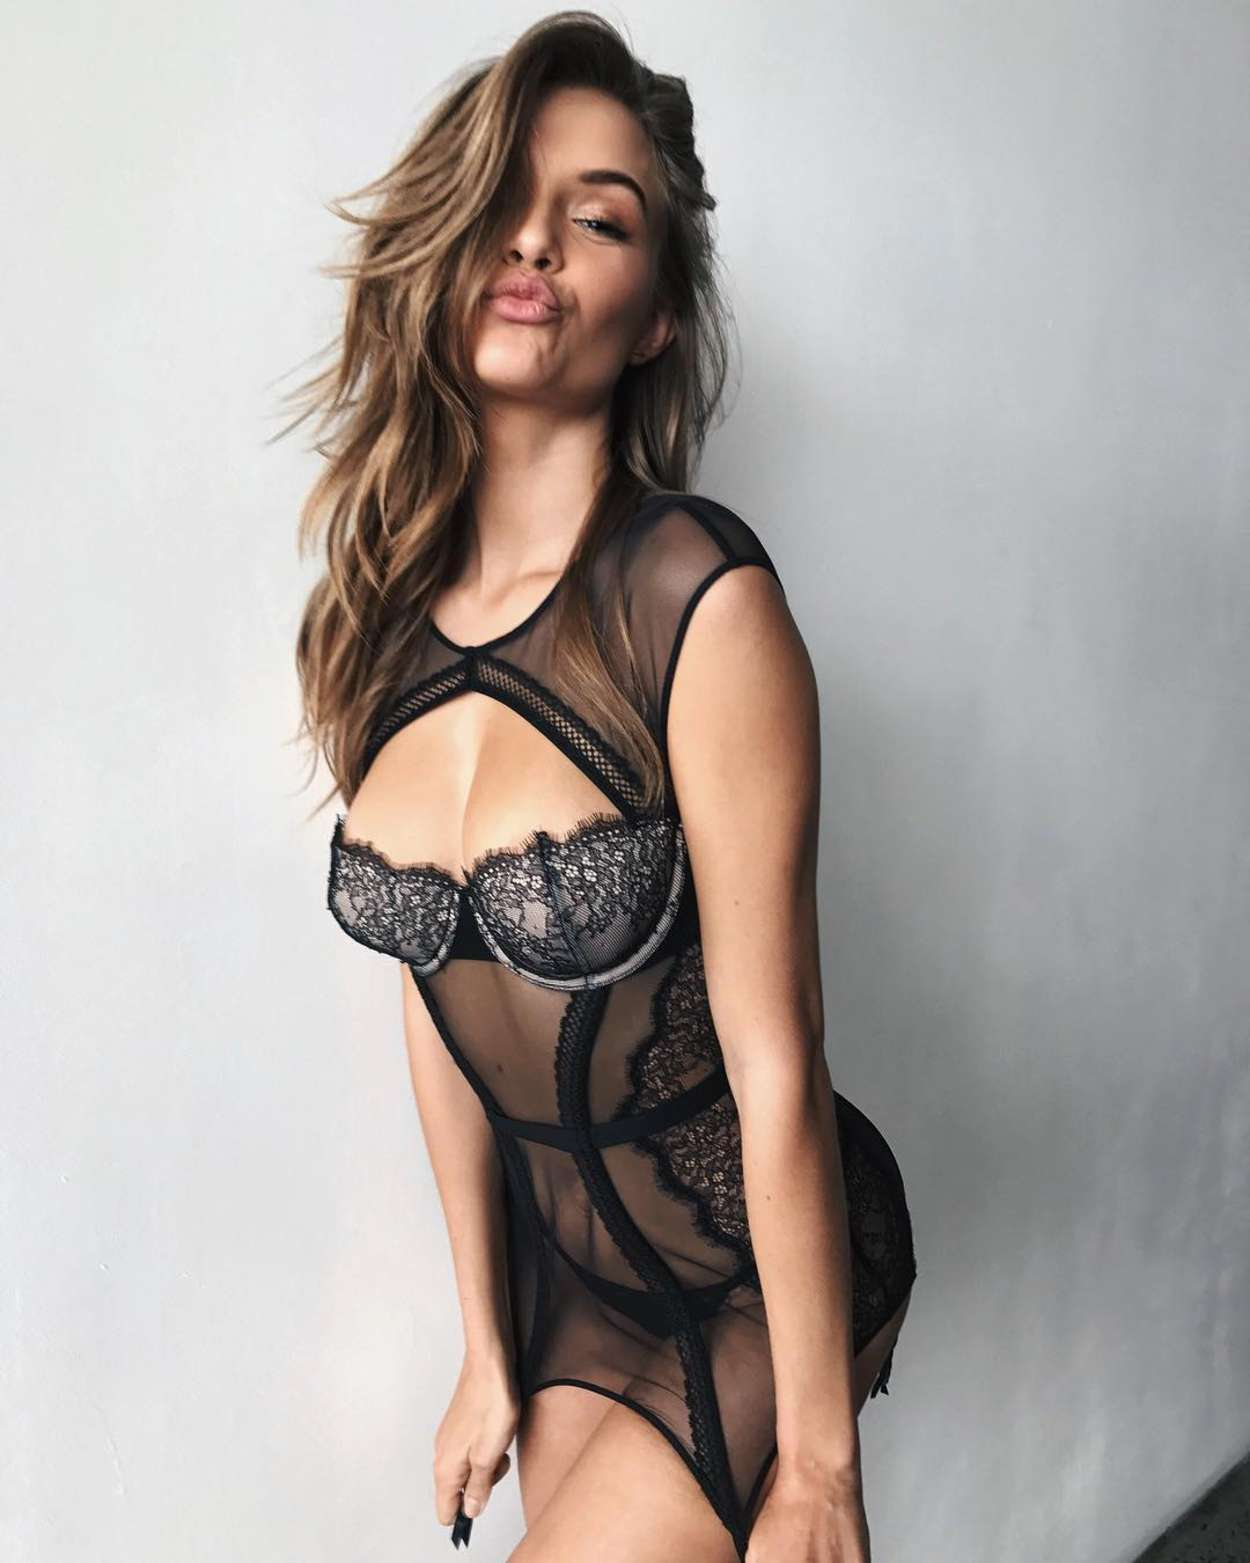 Hot Josephine Skriver nude photos 2019